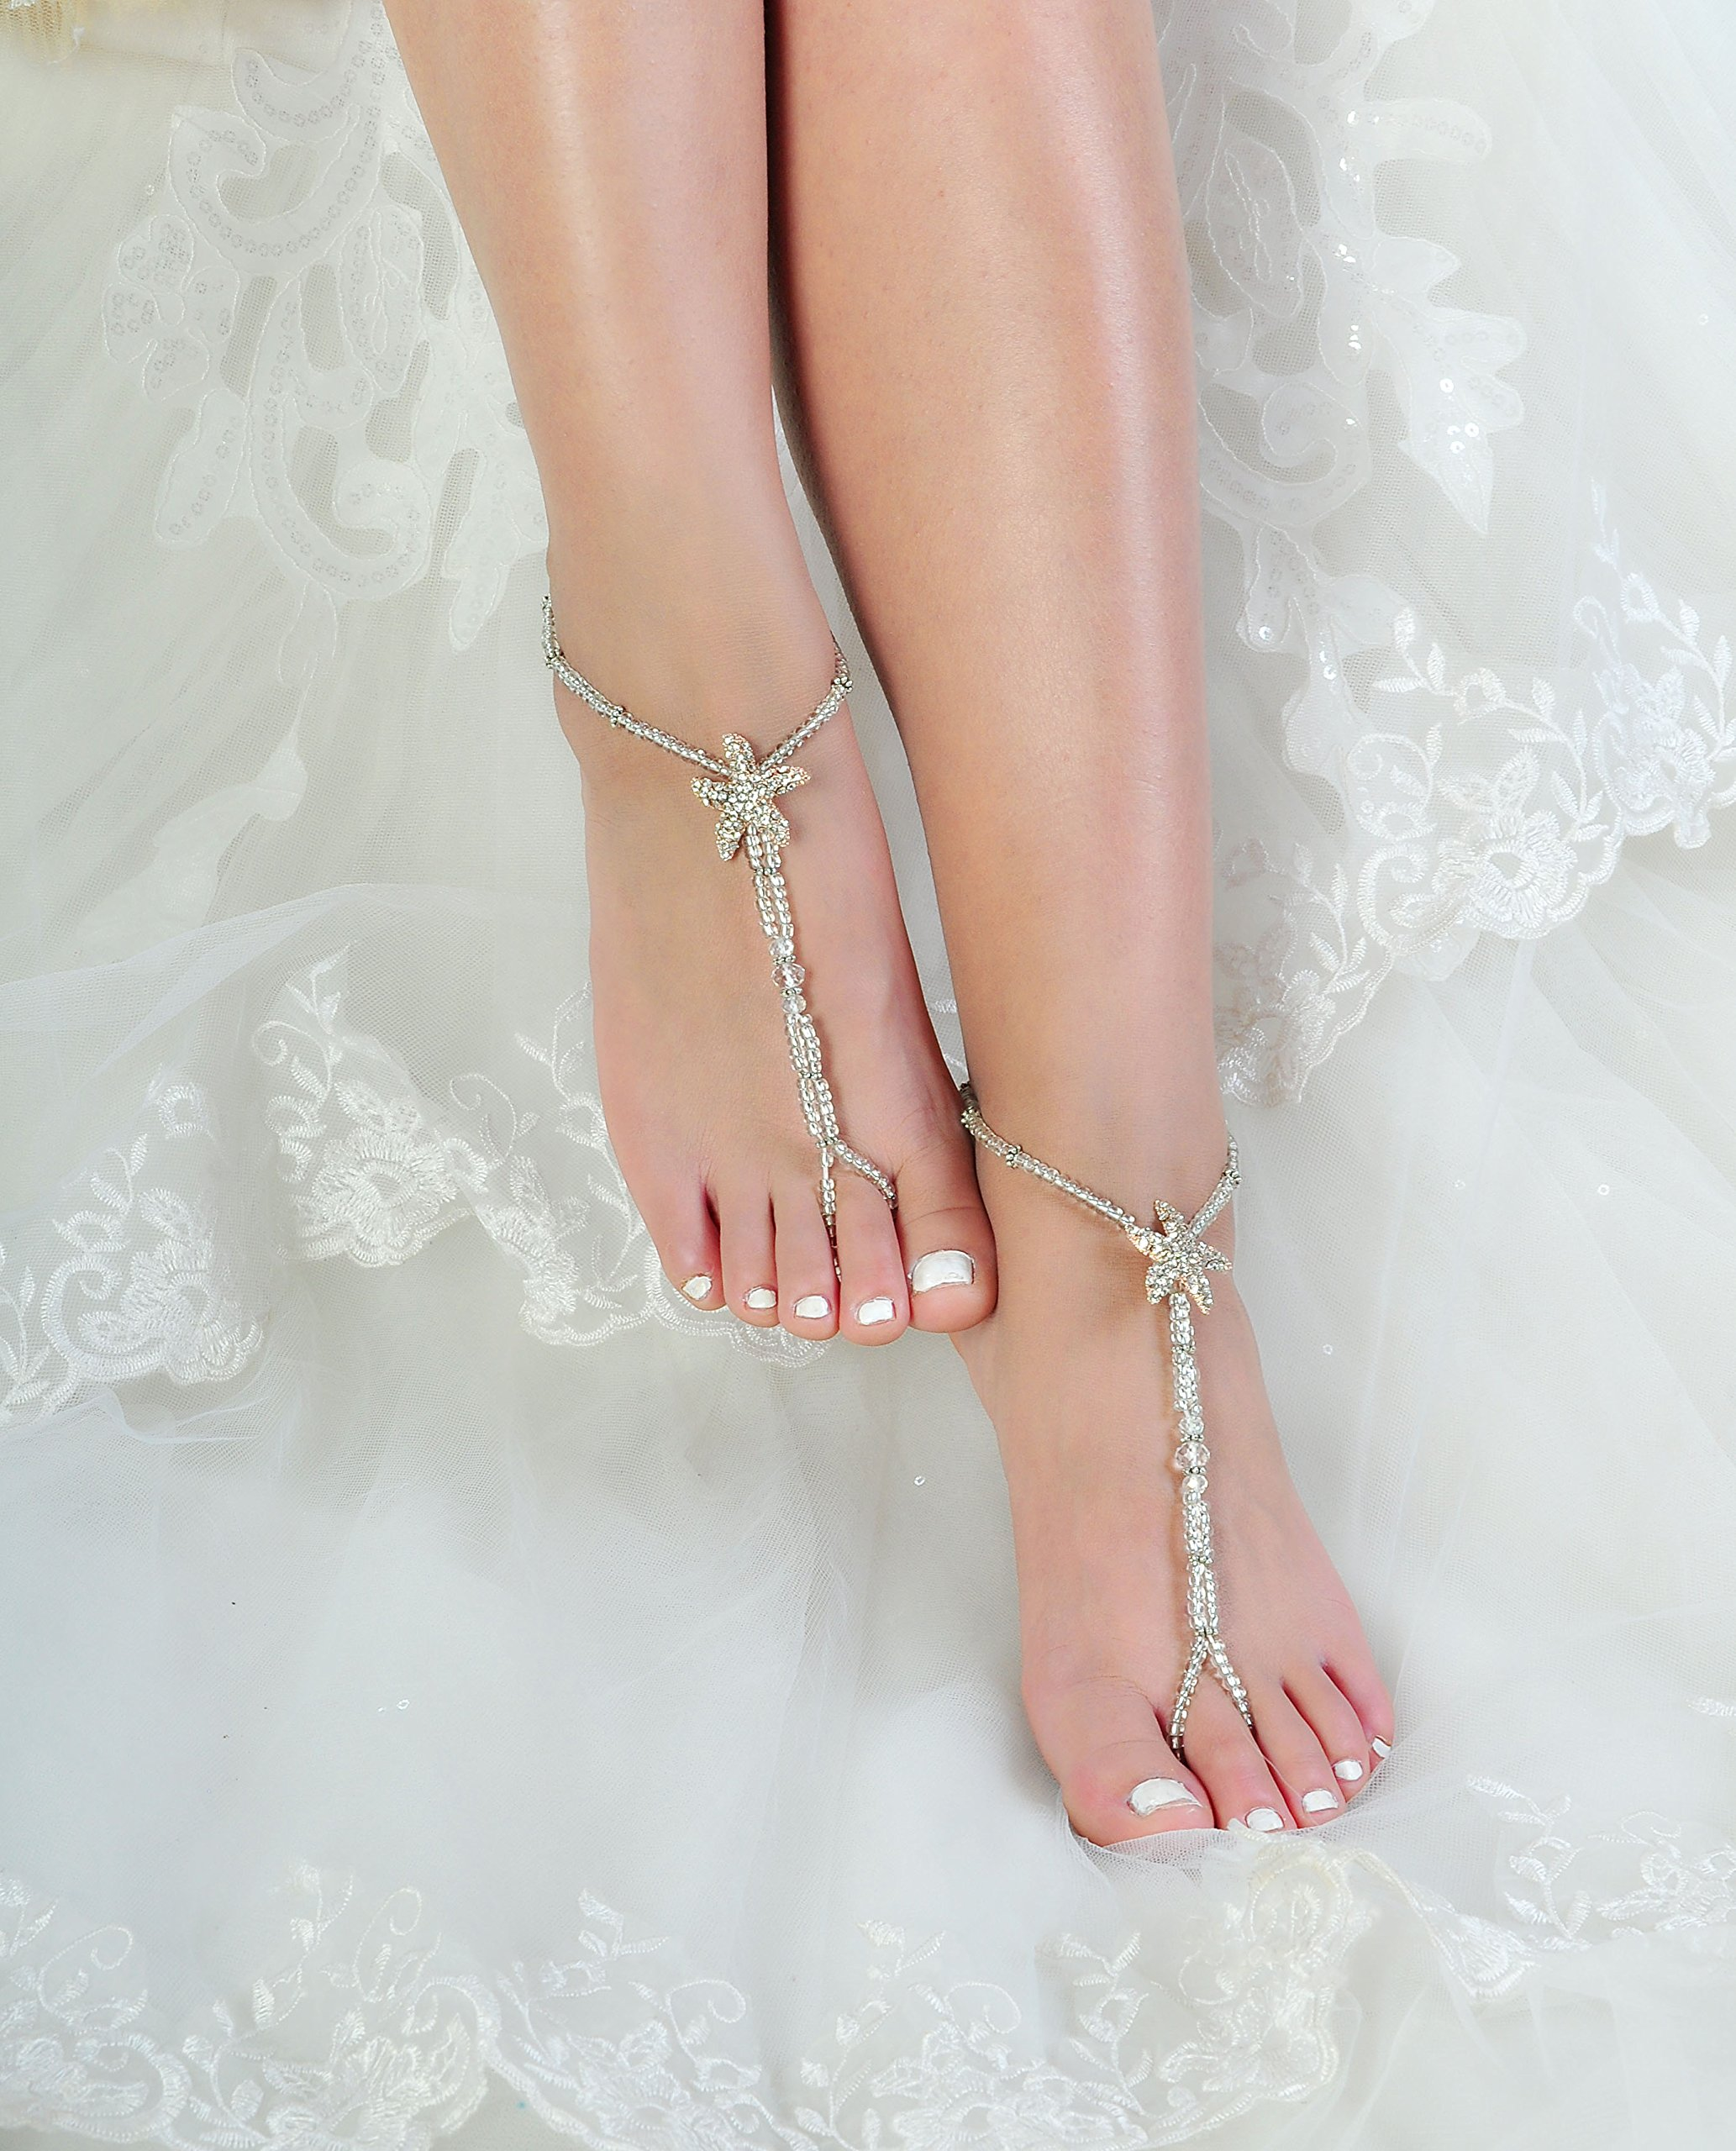 Beaded Bridal Barefoot Sandals,Wedding Anklet,Crystal Sandals,Bridesmaid Gift by Fine Lady (Image #2)